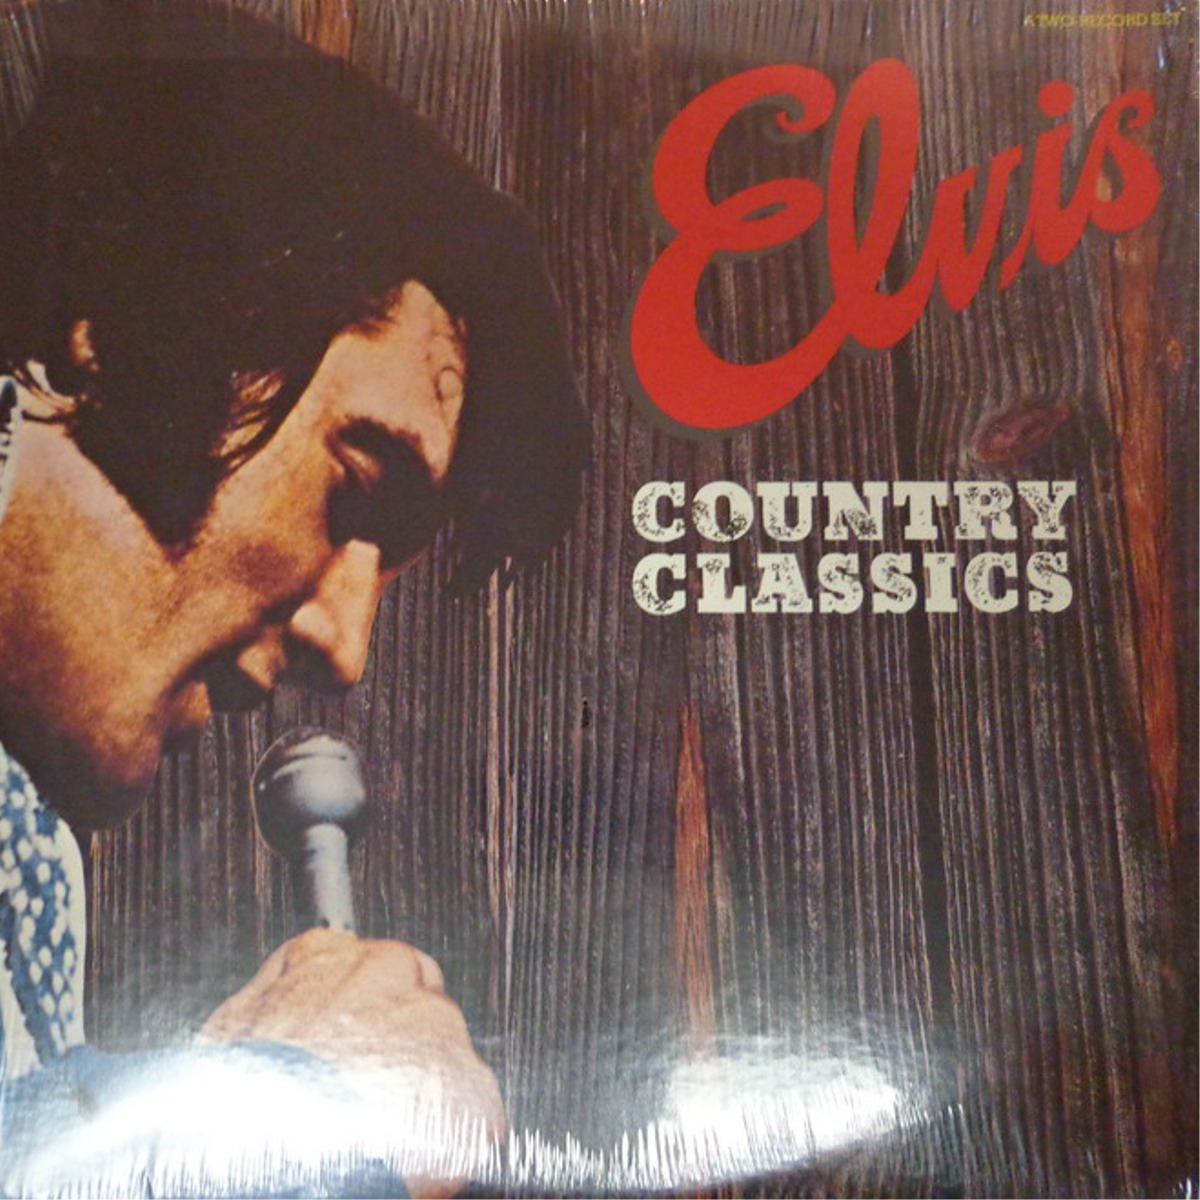 COUNTRY CLASSICS R233299a4mb0z